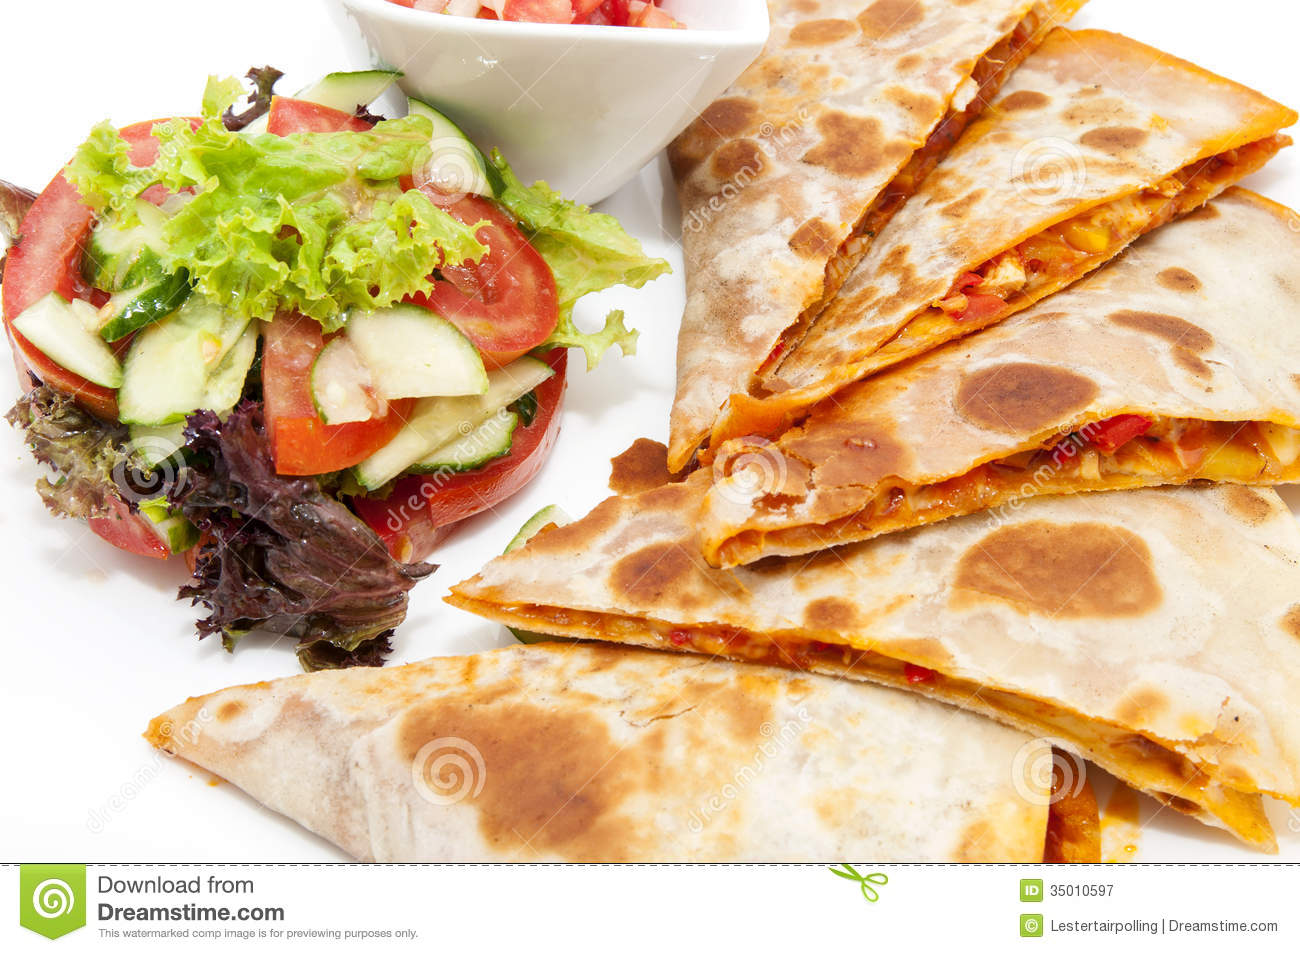 Mexican food royalty free stock photography image 35010597 for About mexican cuisine